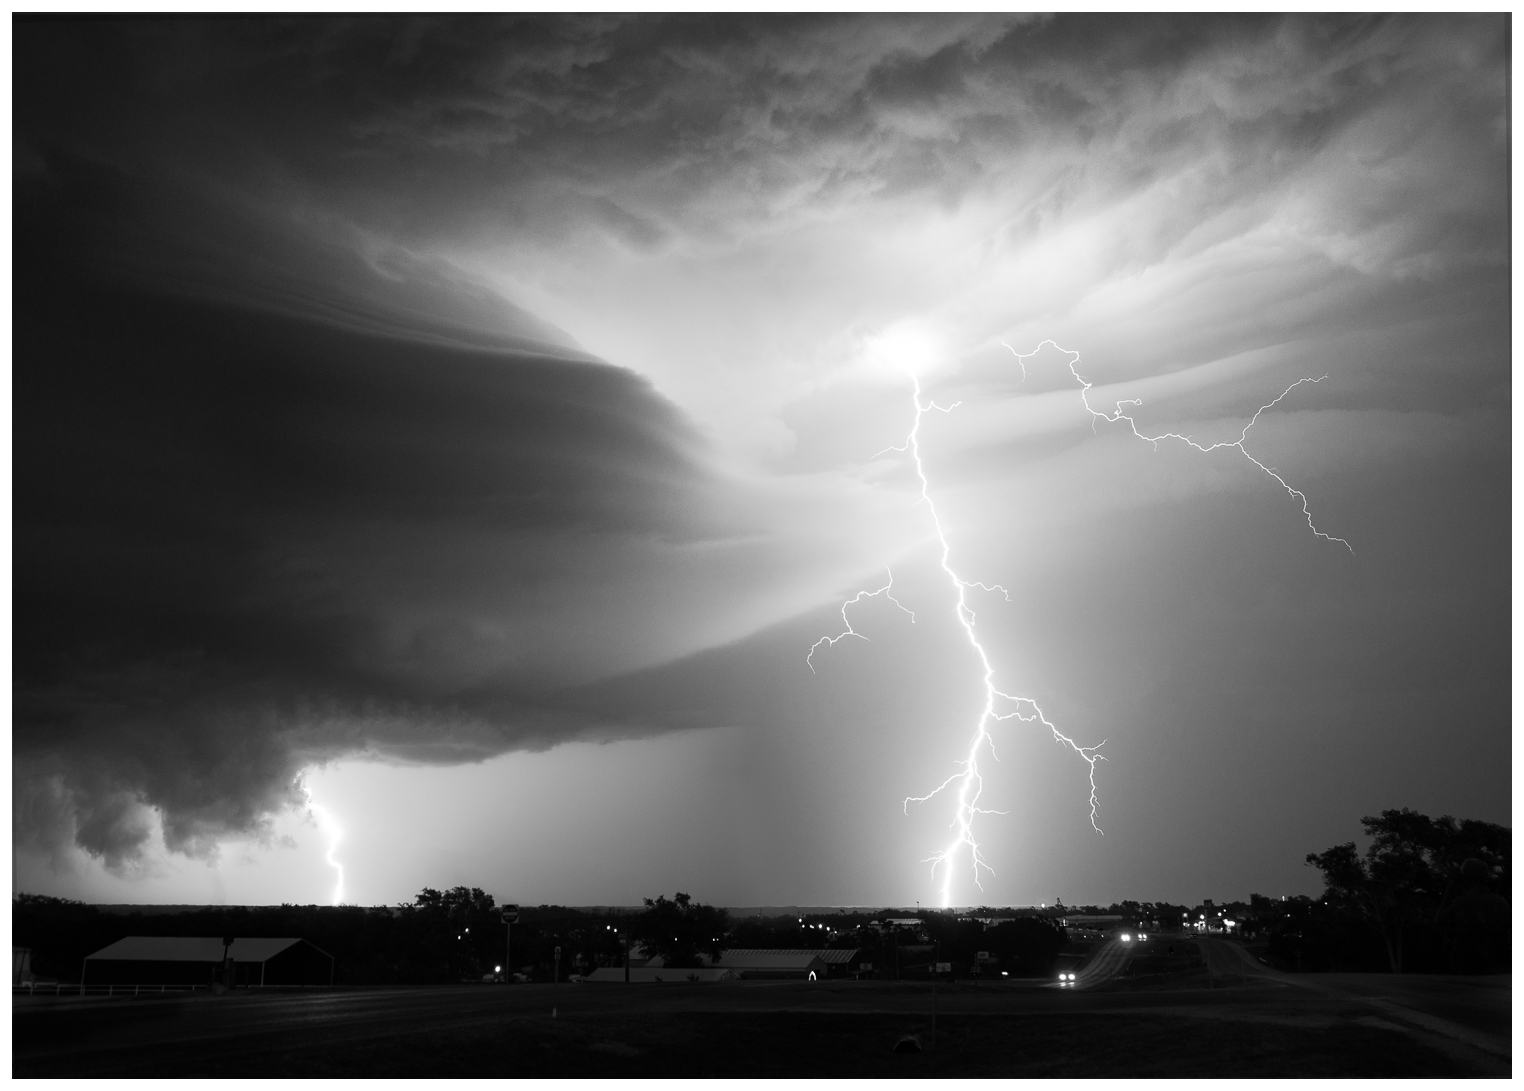 Lightning Storm Near Canadian, Texas 3